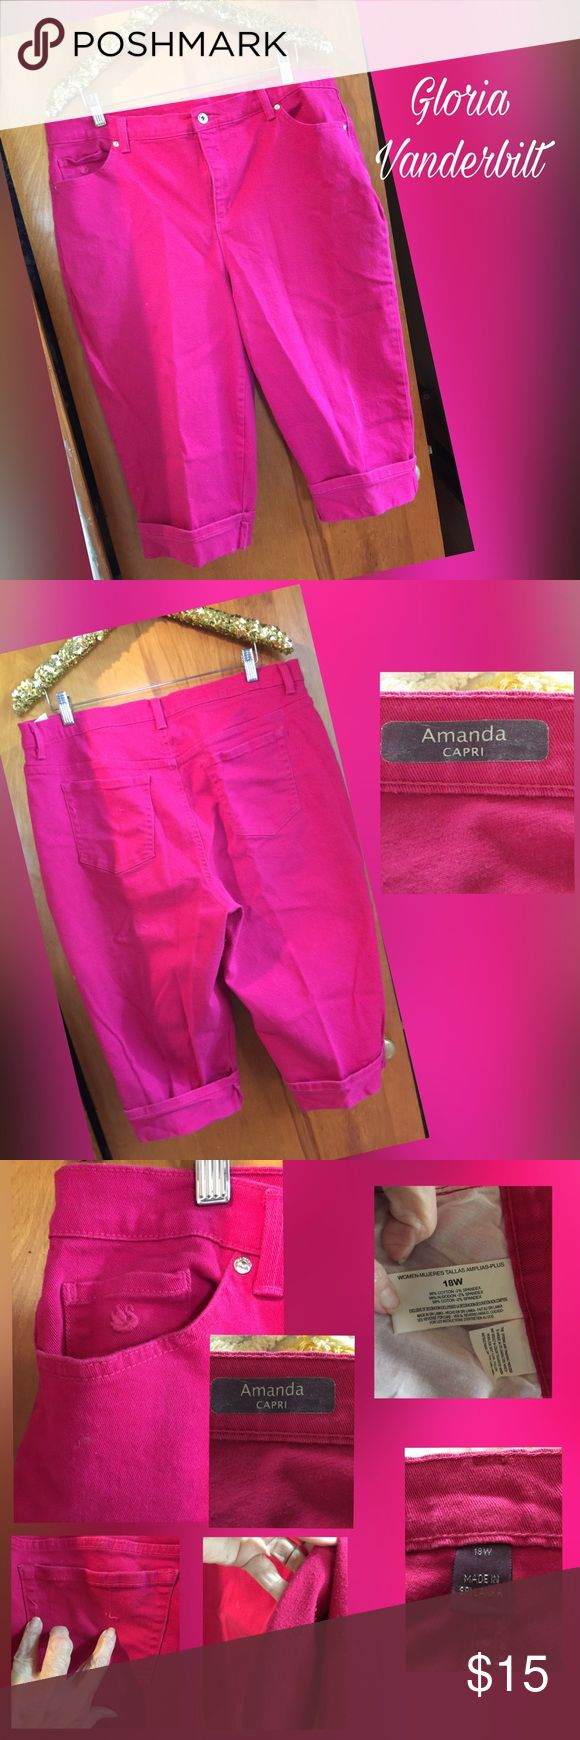 Pink Capris These are heavy ( like denim) capris.  They have the standard 5 pocket design. Amanda by Gloria Vanderbilt.  They show some west, however the pictures really magnify the spots. Lots of wear left Gloria Vanderbilt Pants Capris